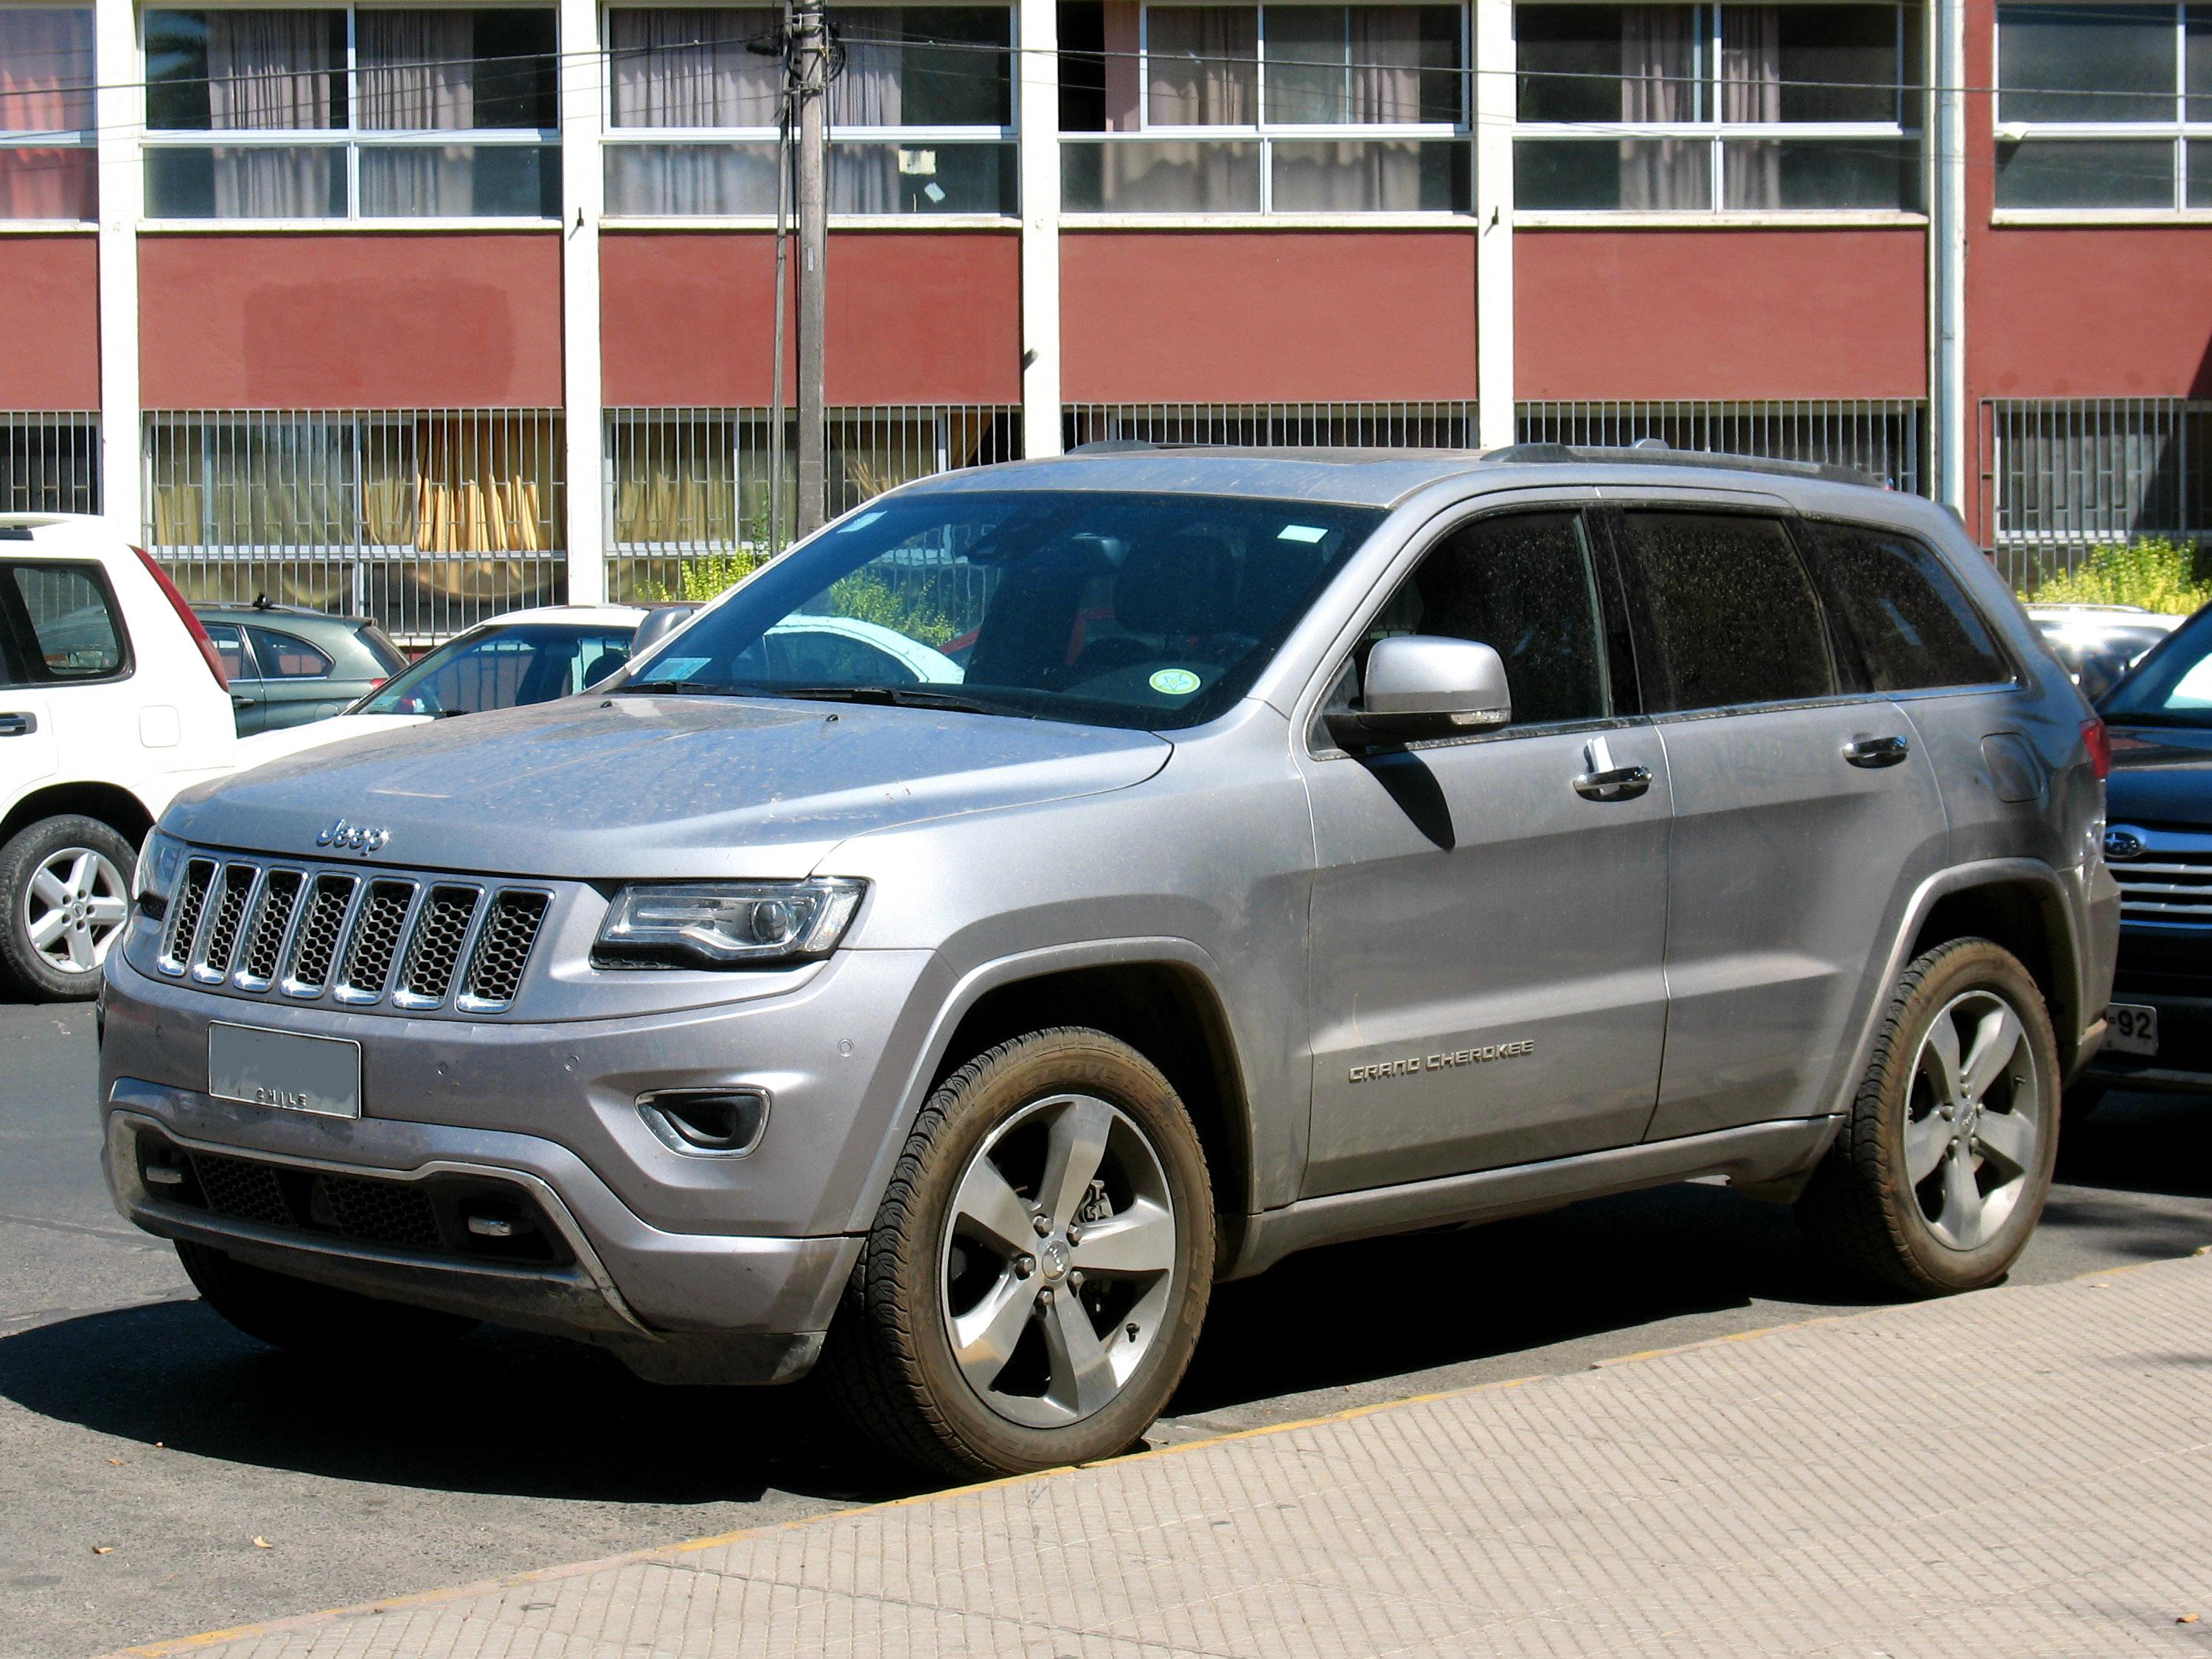 grand jeep images of overland wj cherokee